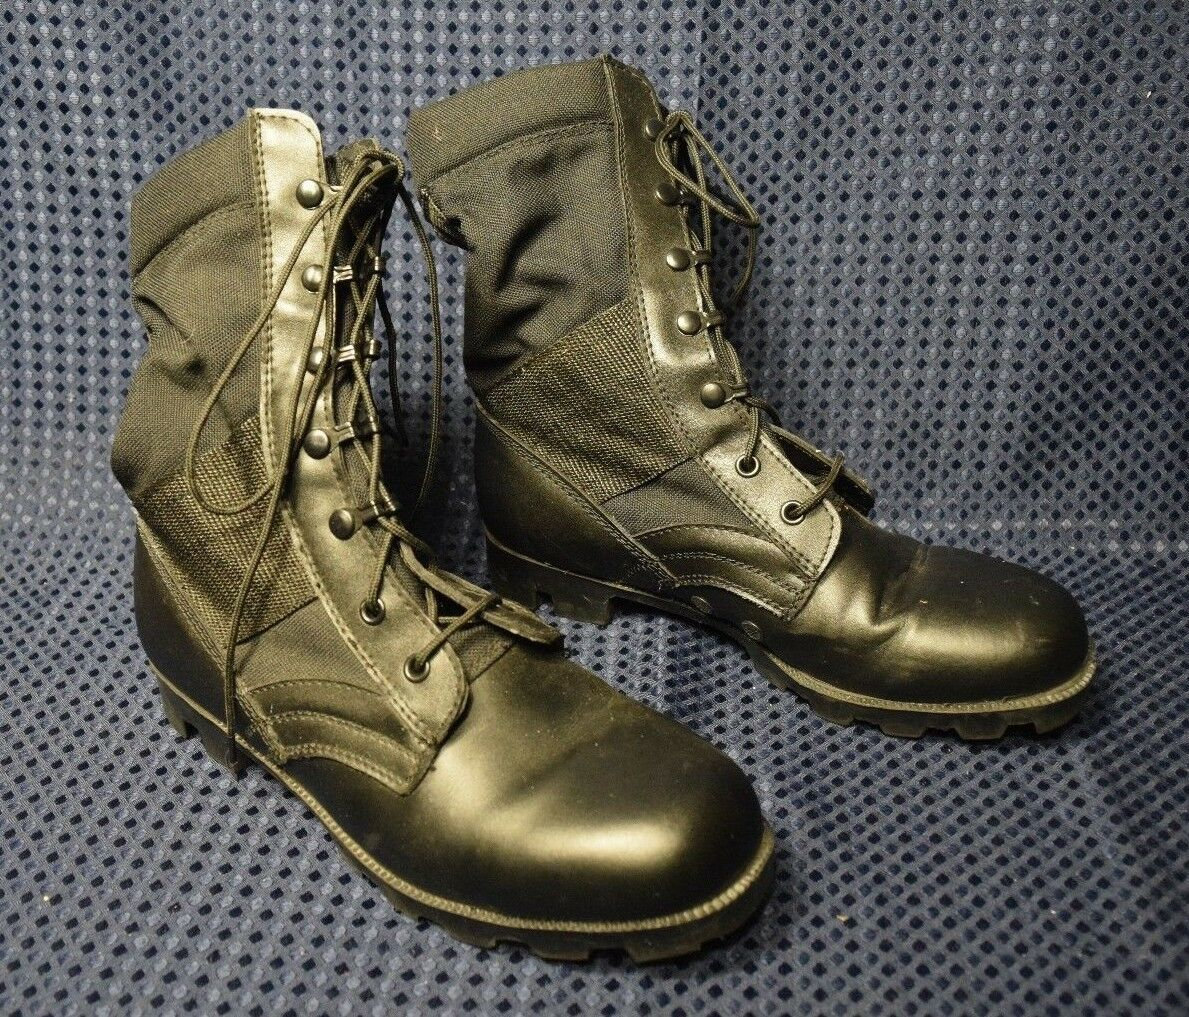 Leather Work Desert Combat Boots Army Tactical Comfort Outdoor  Men's Sz 7R